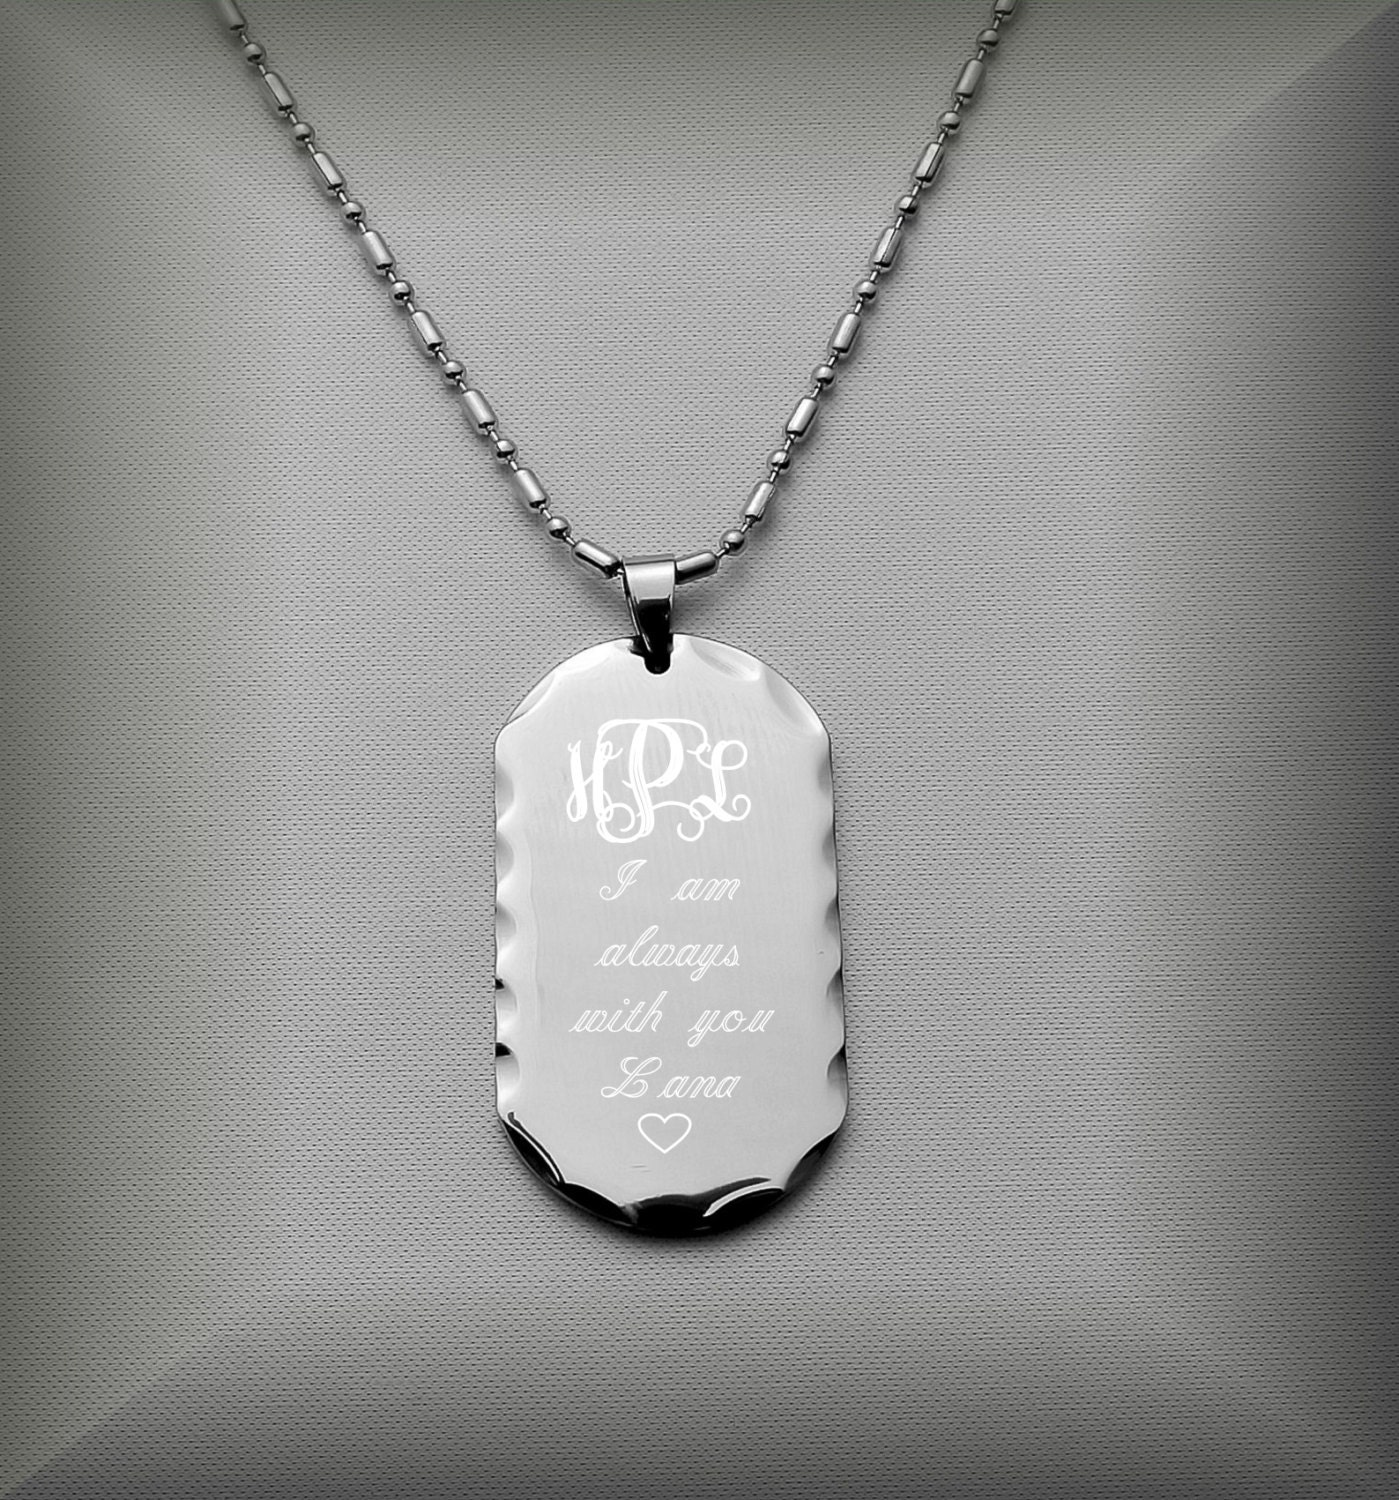 custom dog tag personalized silver dog tag necklace with. Black Bedroom Furniture Sets. Home Design Ideas